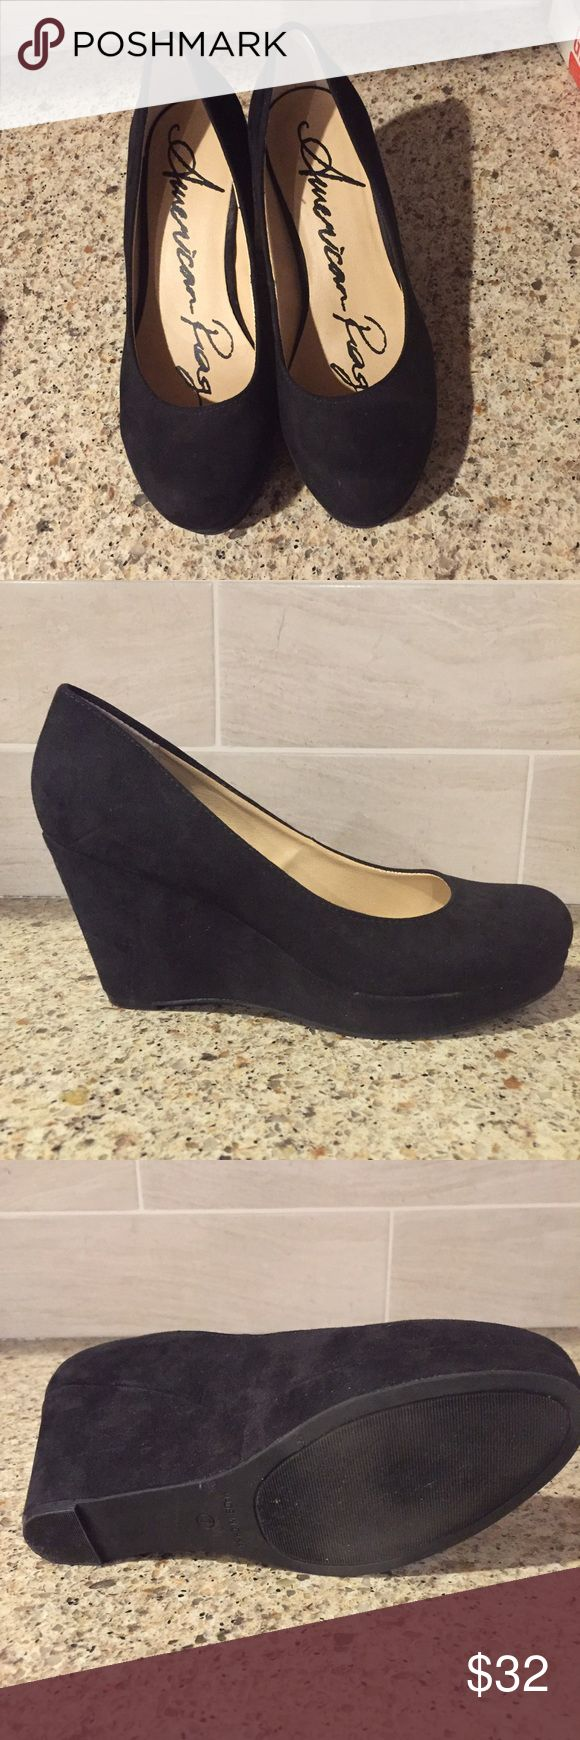 AMERICAN RAG suede wedges Perfect condition American Rag black suede wedges. No scuffs. Size 7. Closed toe. American Rag Shoes Wedges